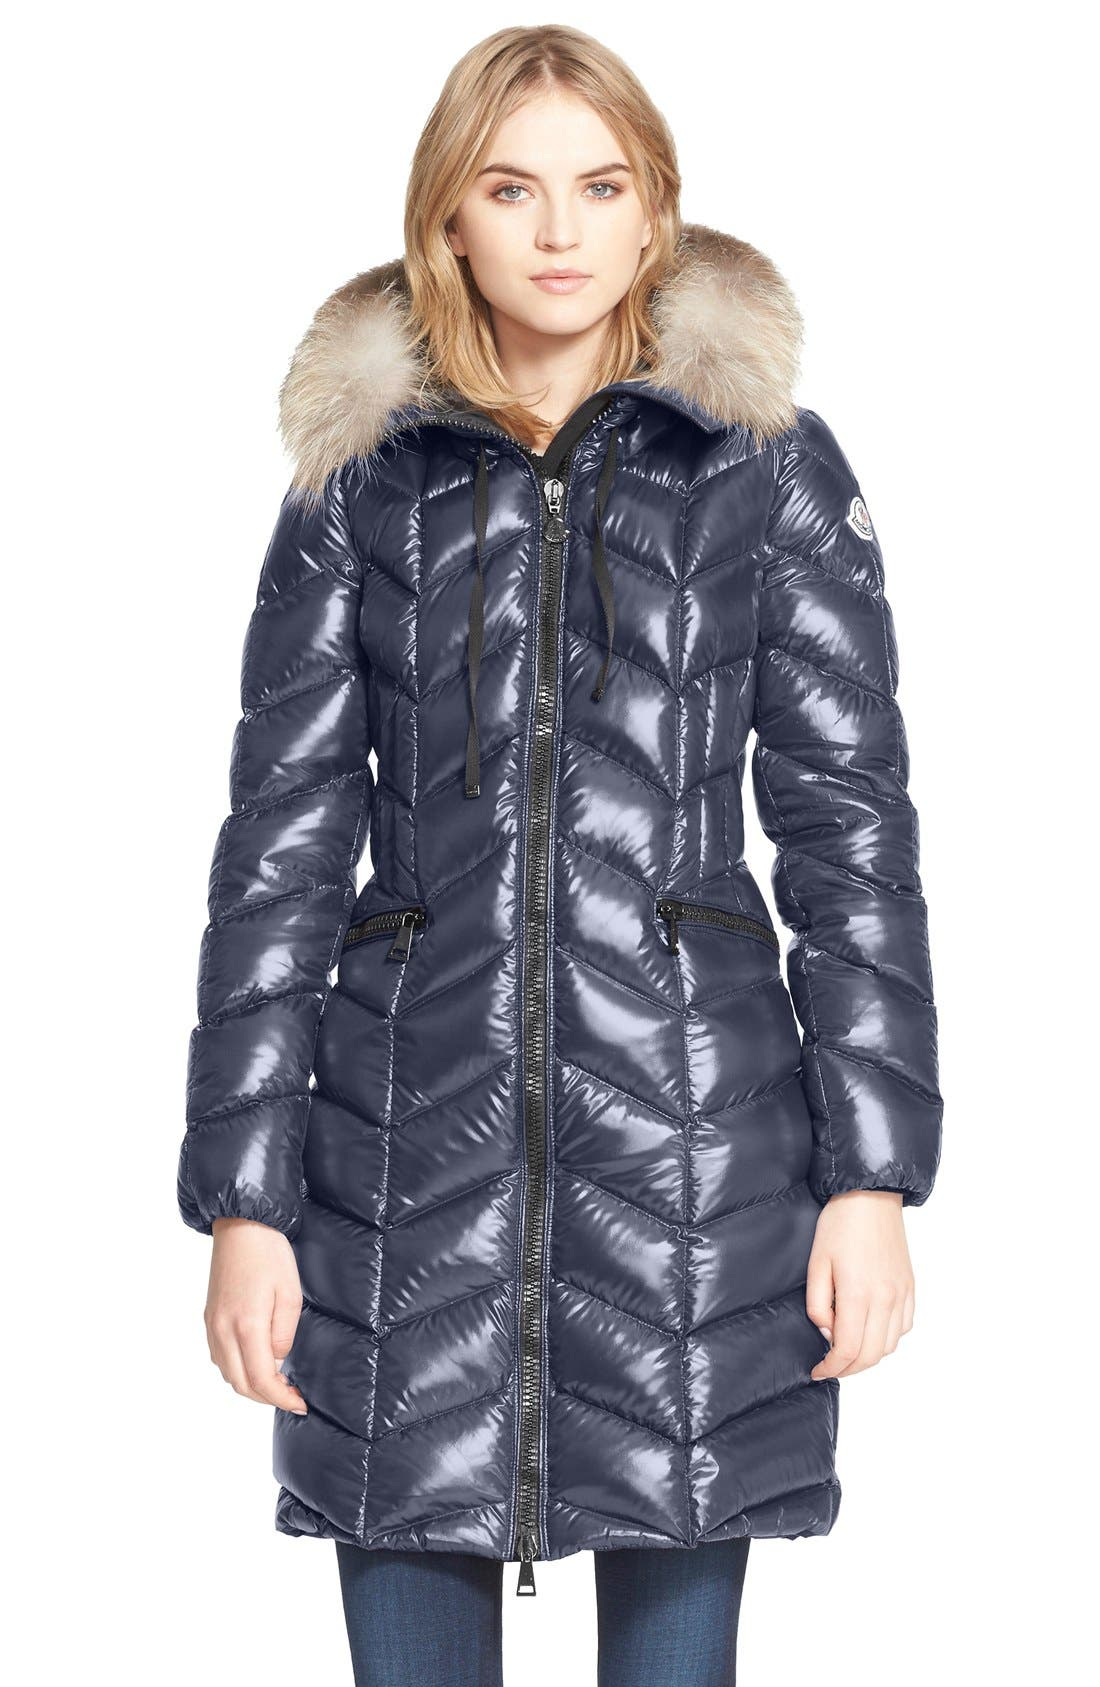 Main Image - Moncler 'Bellette' Lacquer Down Coat with Genuine Fox Fur Ruff